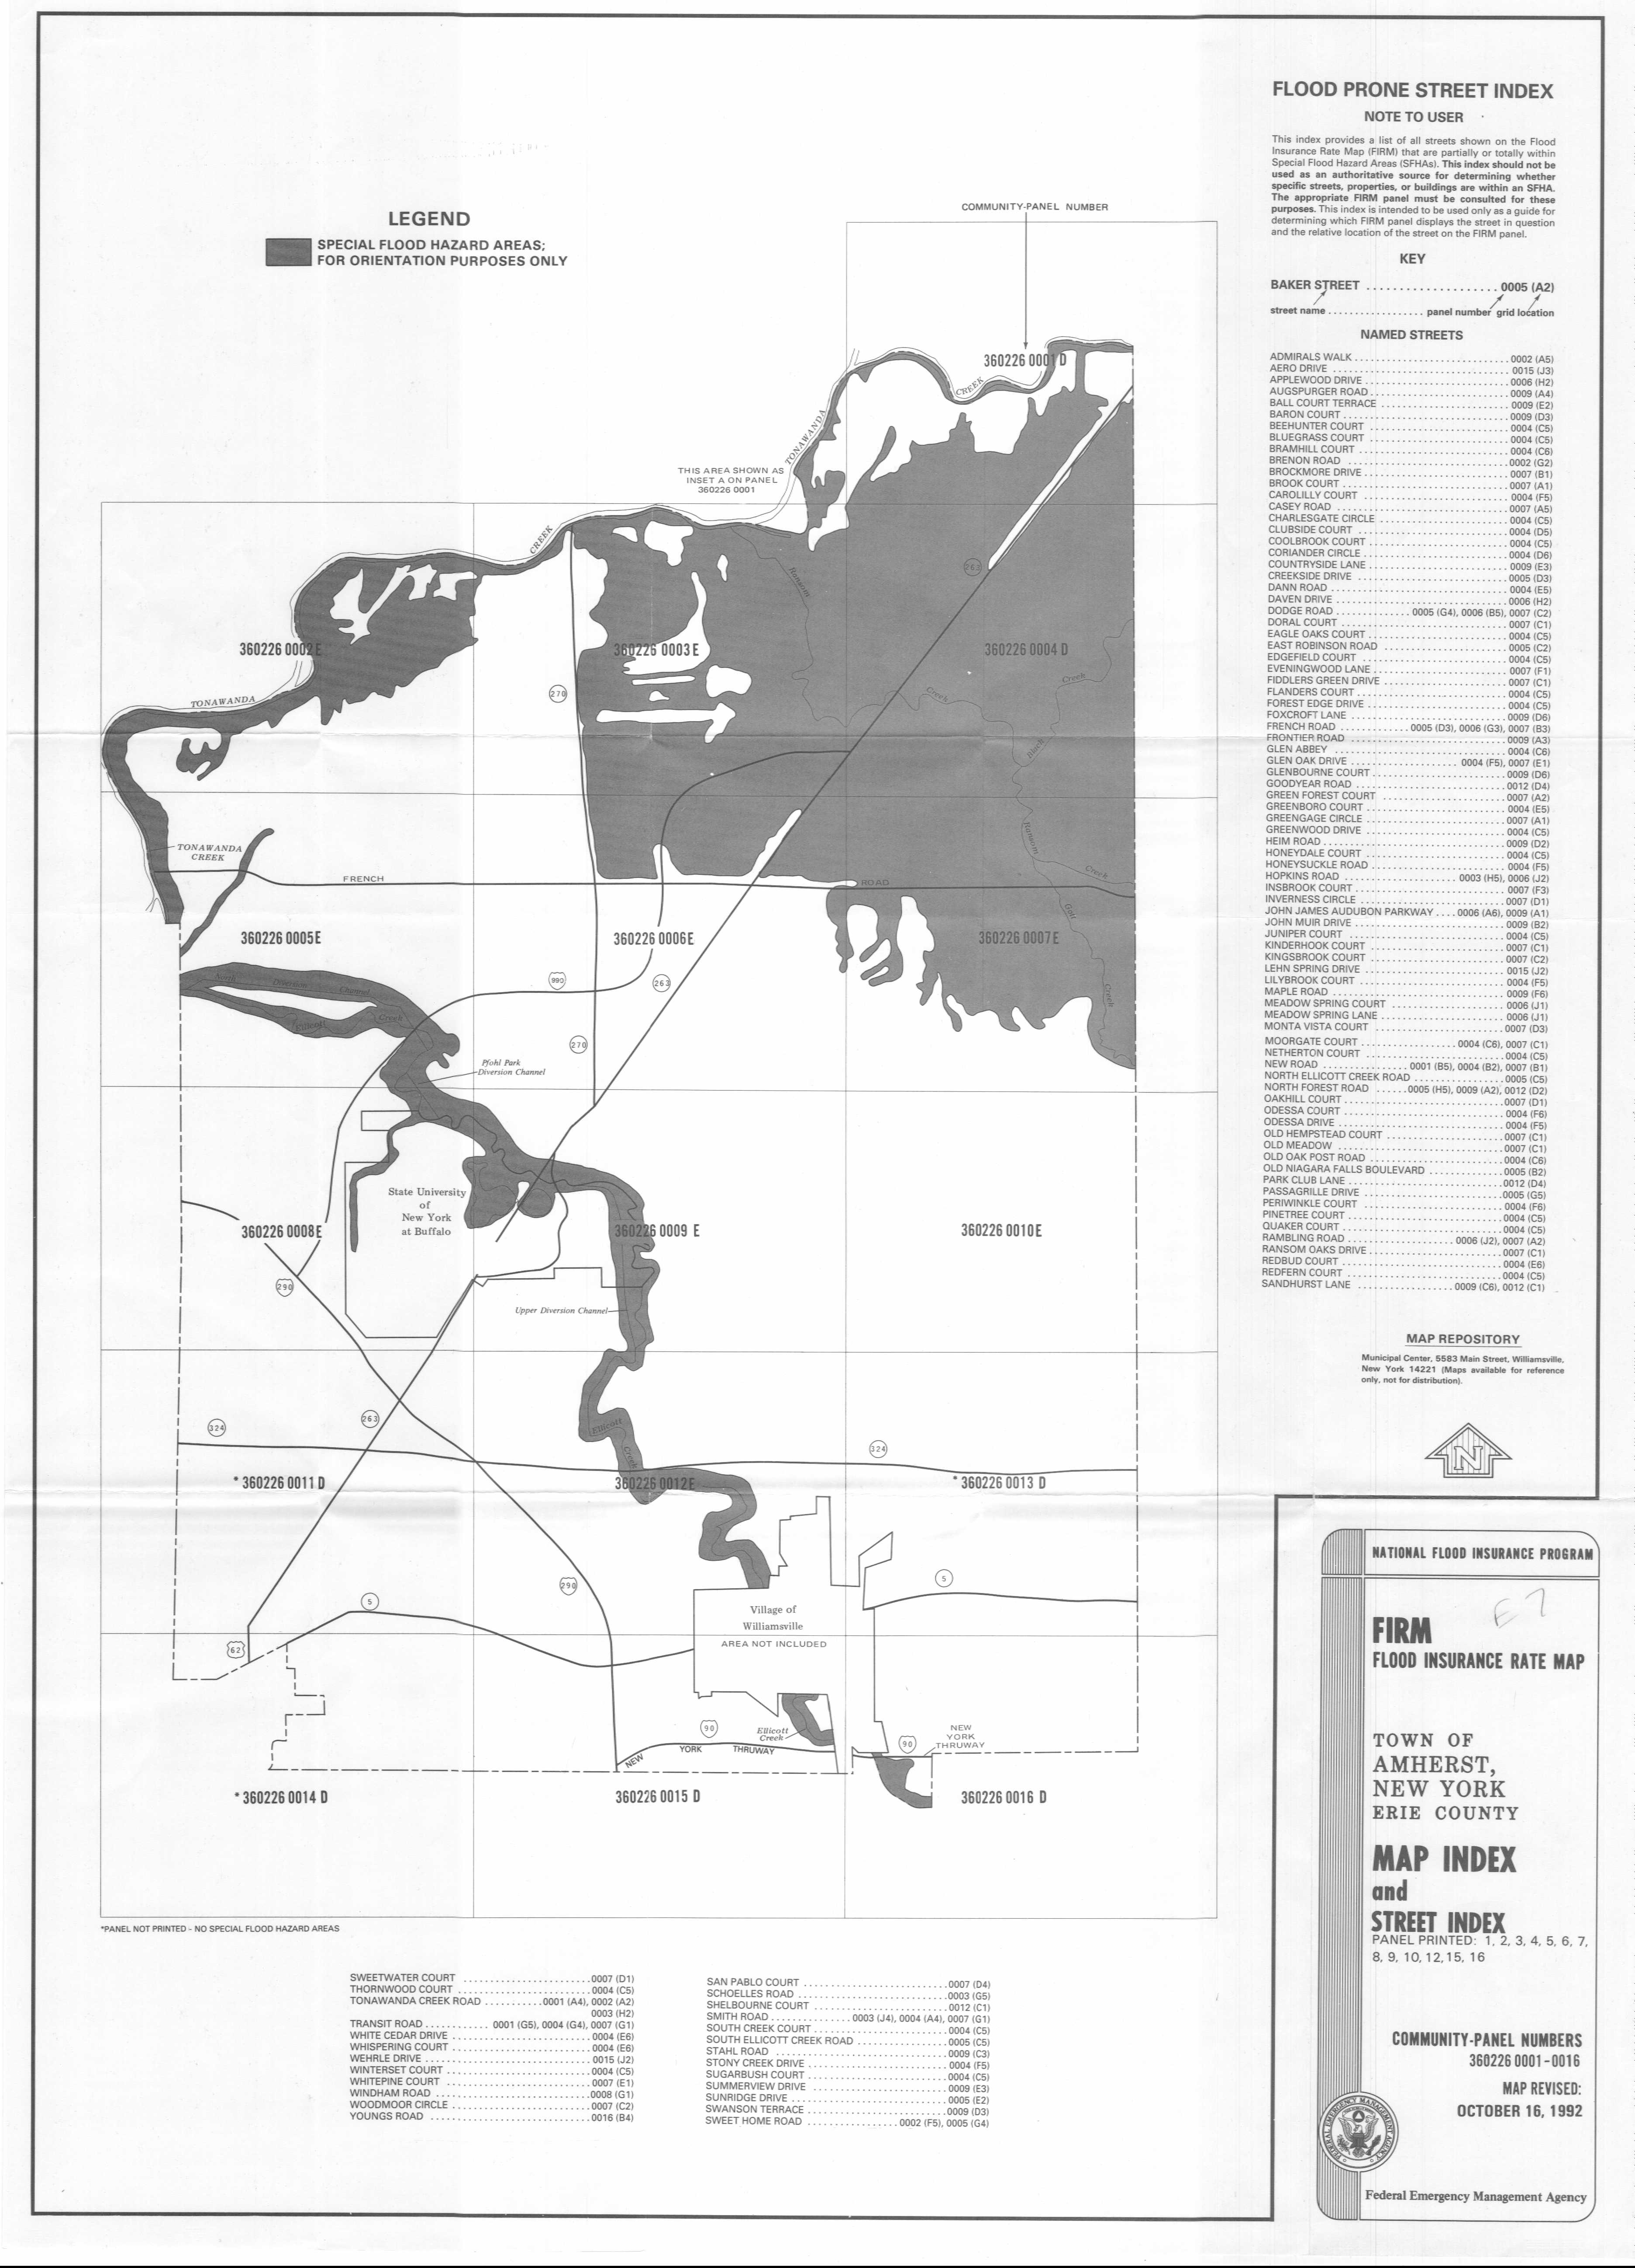 Western New York Real Estate Town Of Amherst Flooding Information - Nyc flood zone map pdf